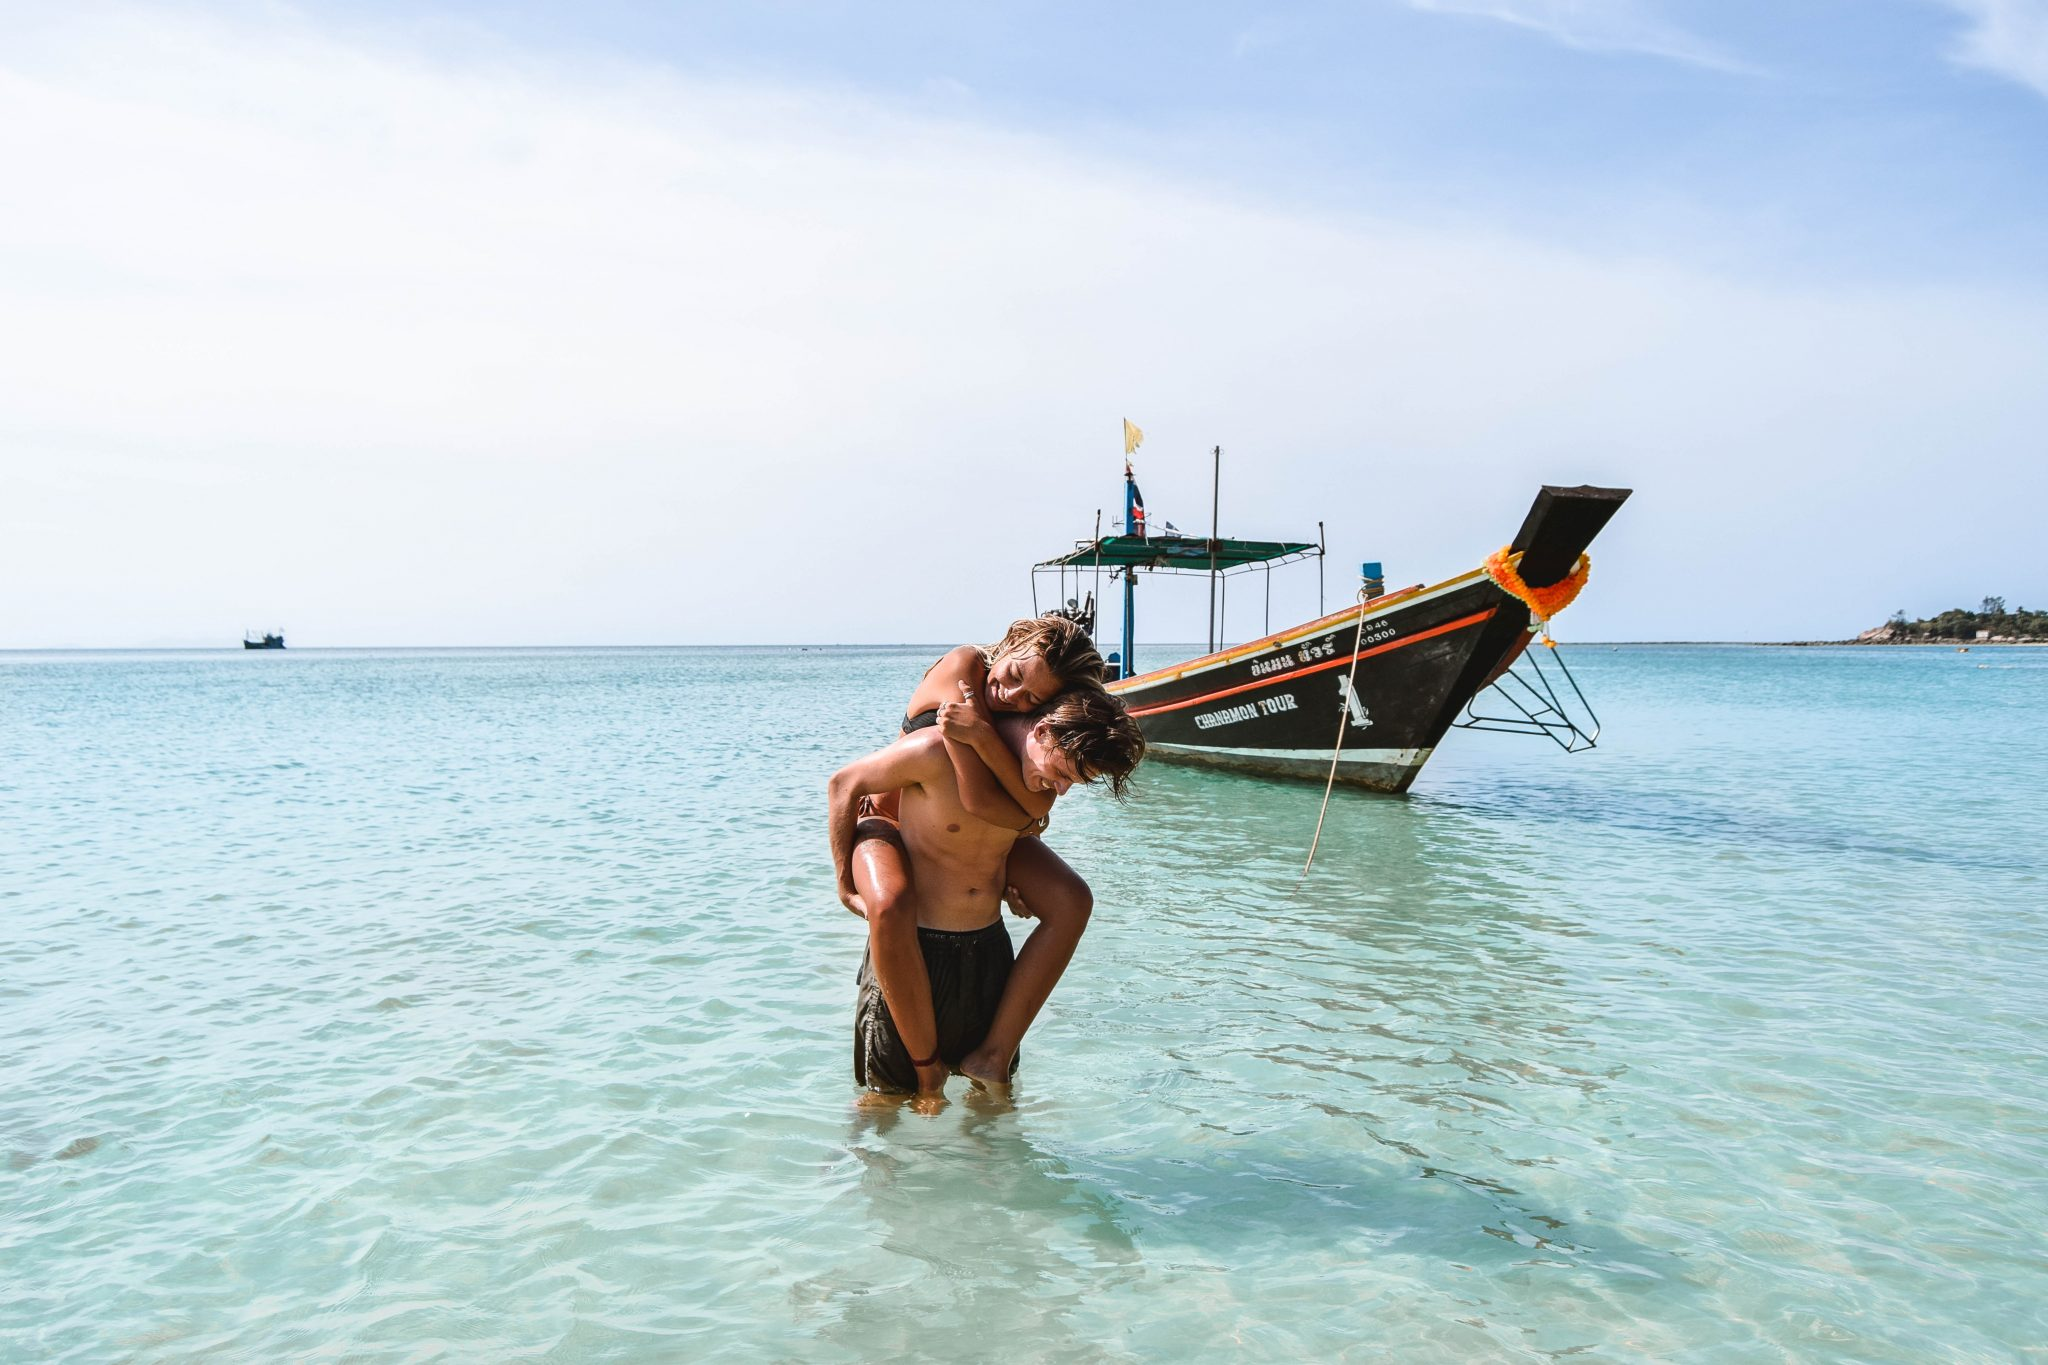 Wanderers & Warriors - Charlie & Lauren UK Travel Couple - Chaloklum Beach Koh Phangan Best Beaches Koh Phangan Beaches